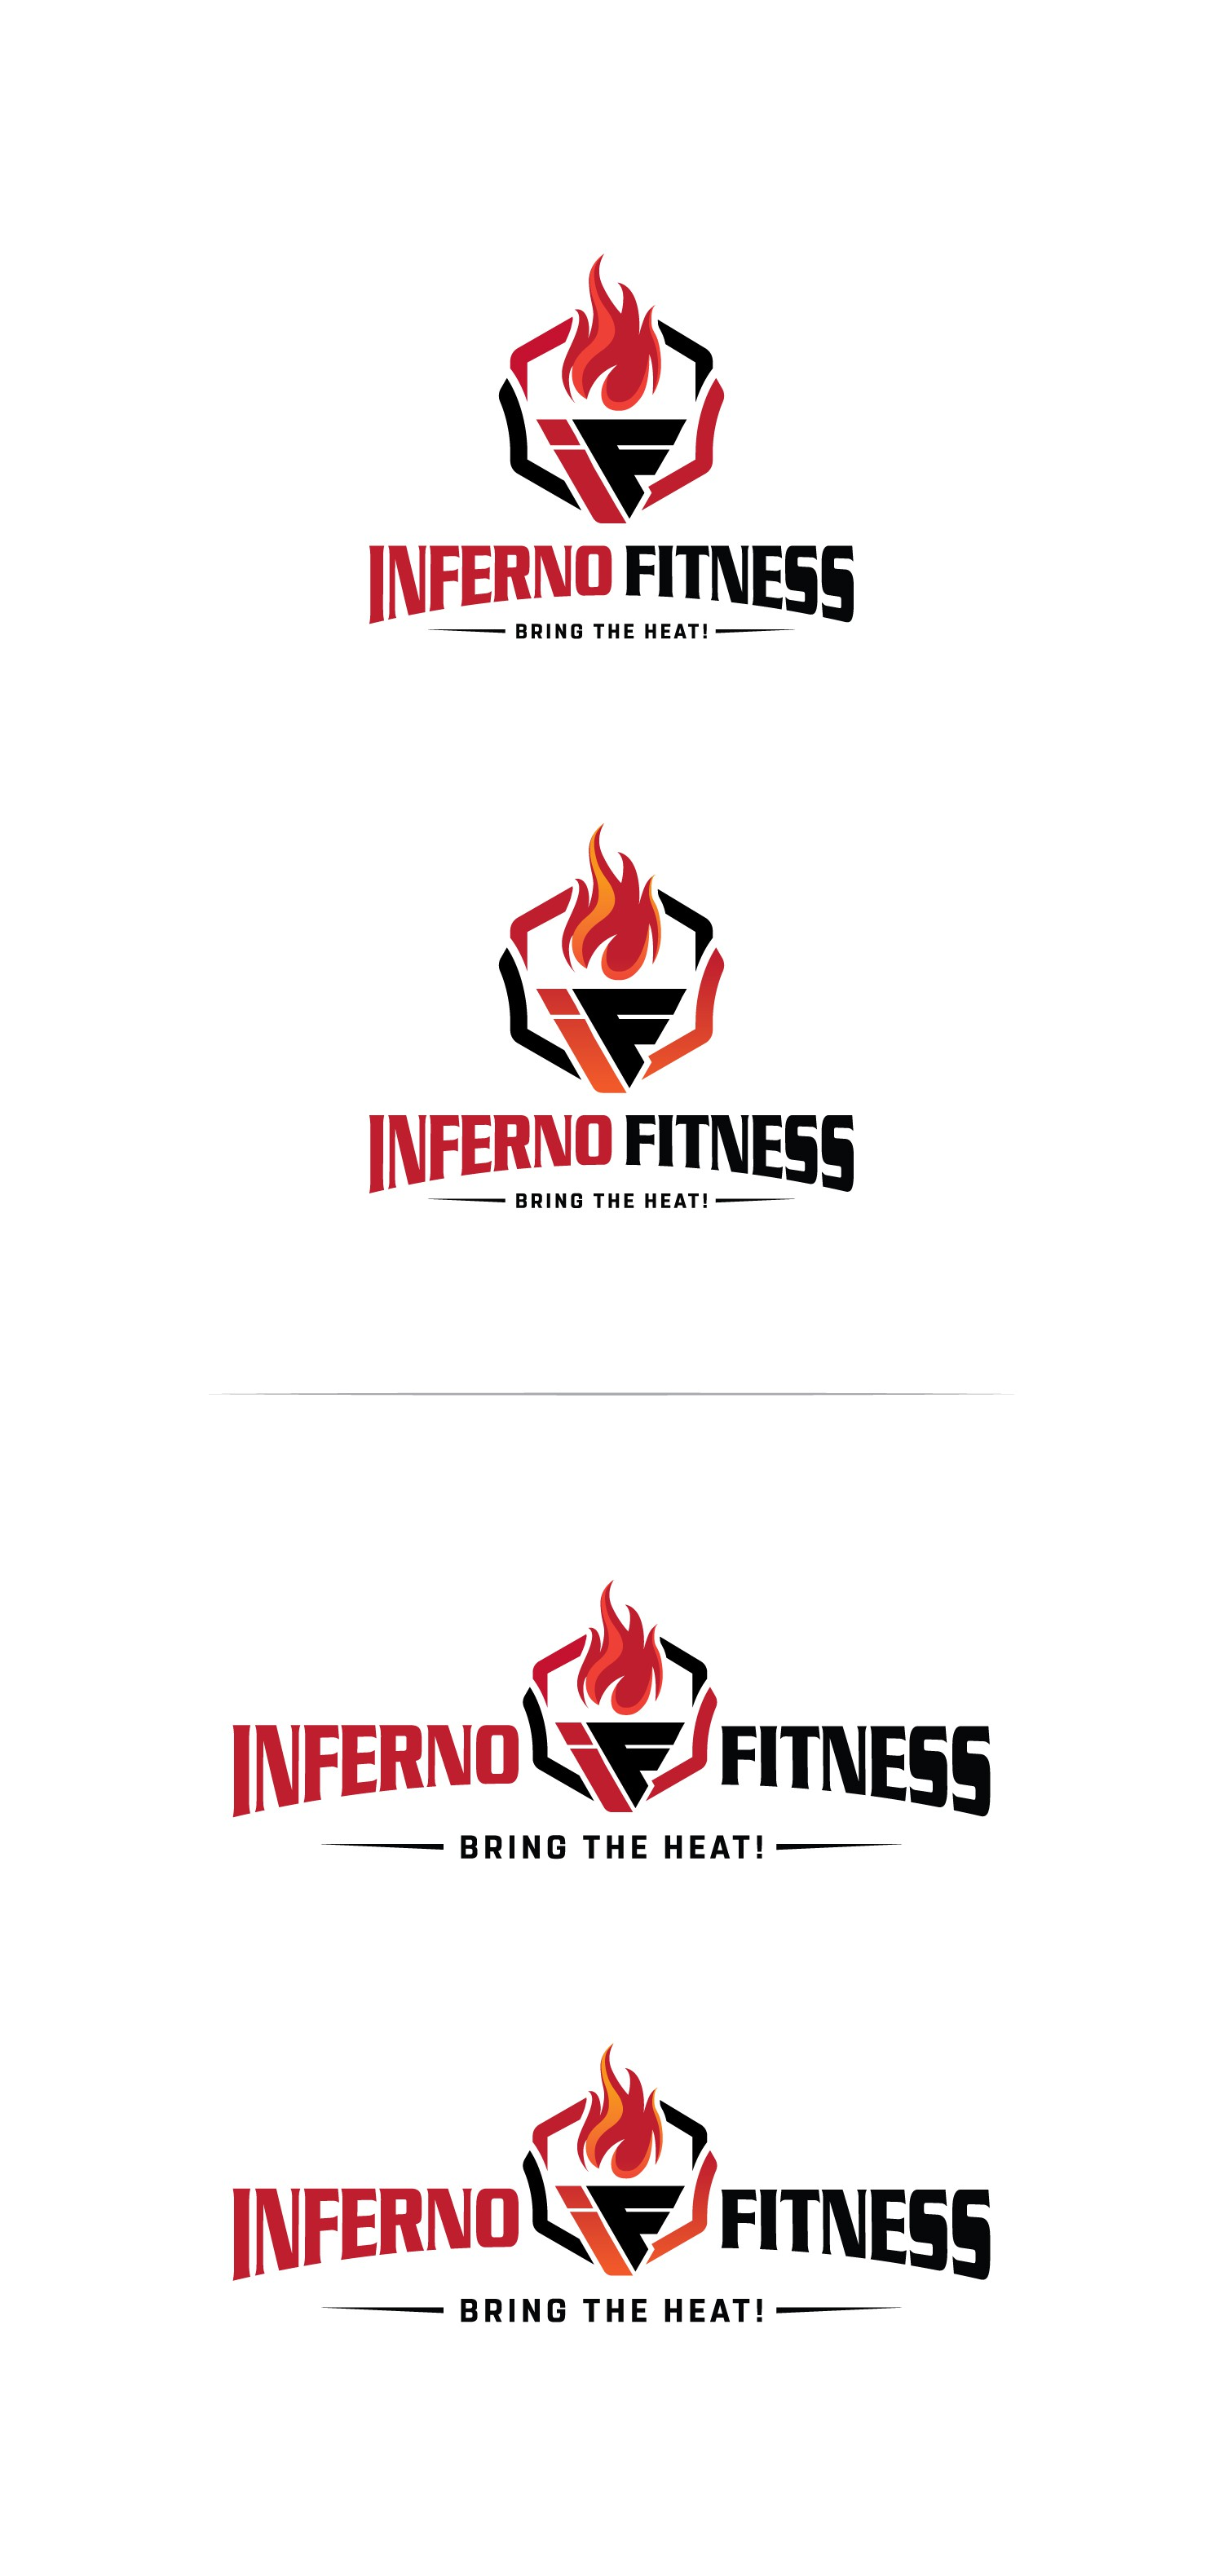 New Fitness Trainer needs branded Logo to IGNITE business!